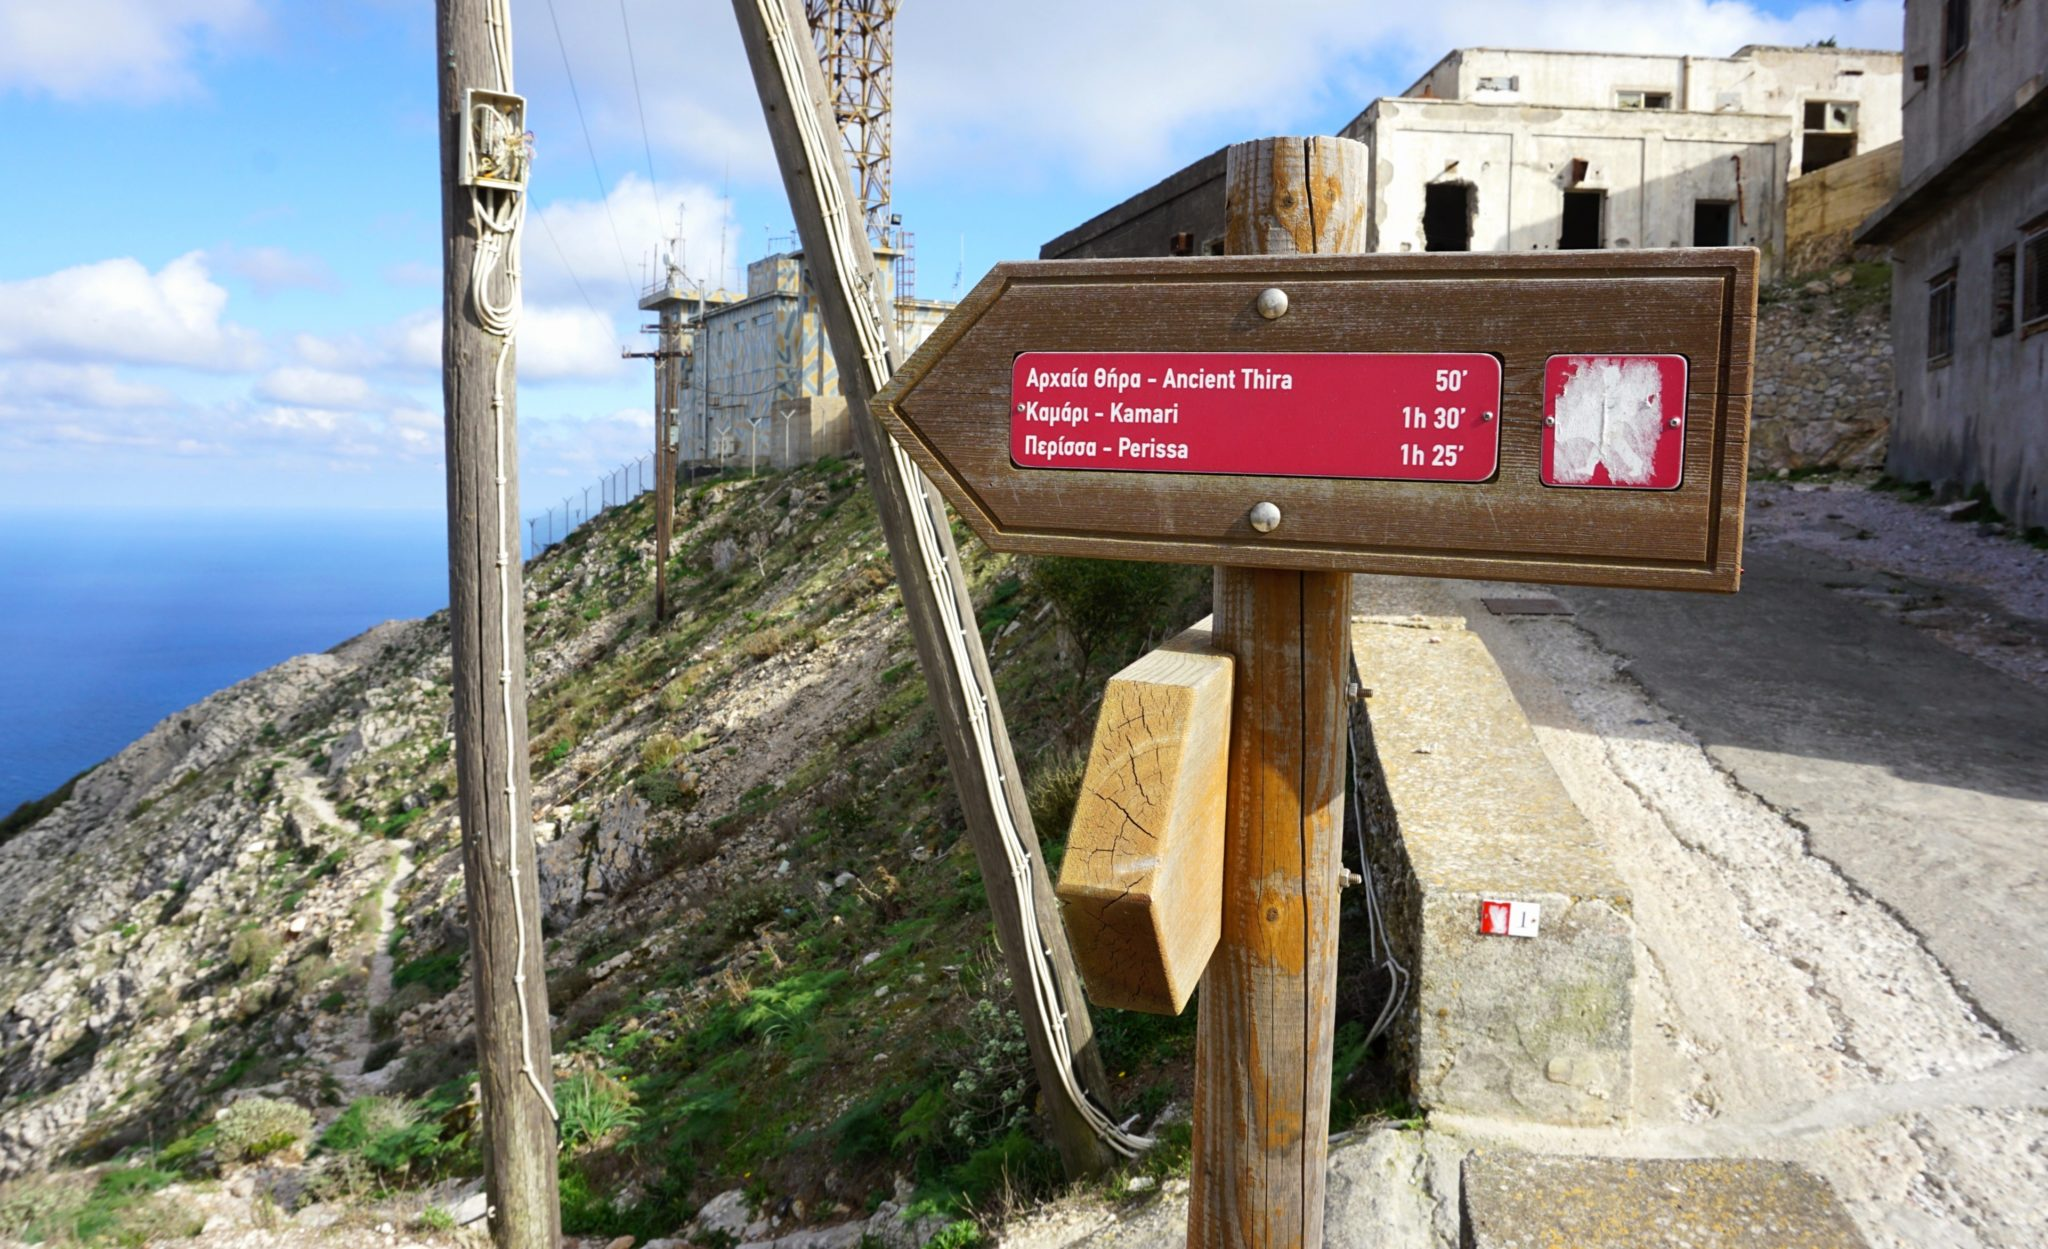 A route marker on the hiking trail from the monastery to Ancient Thera.